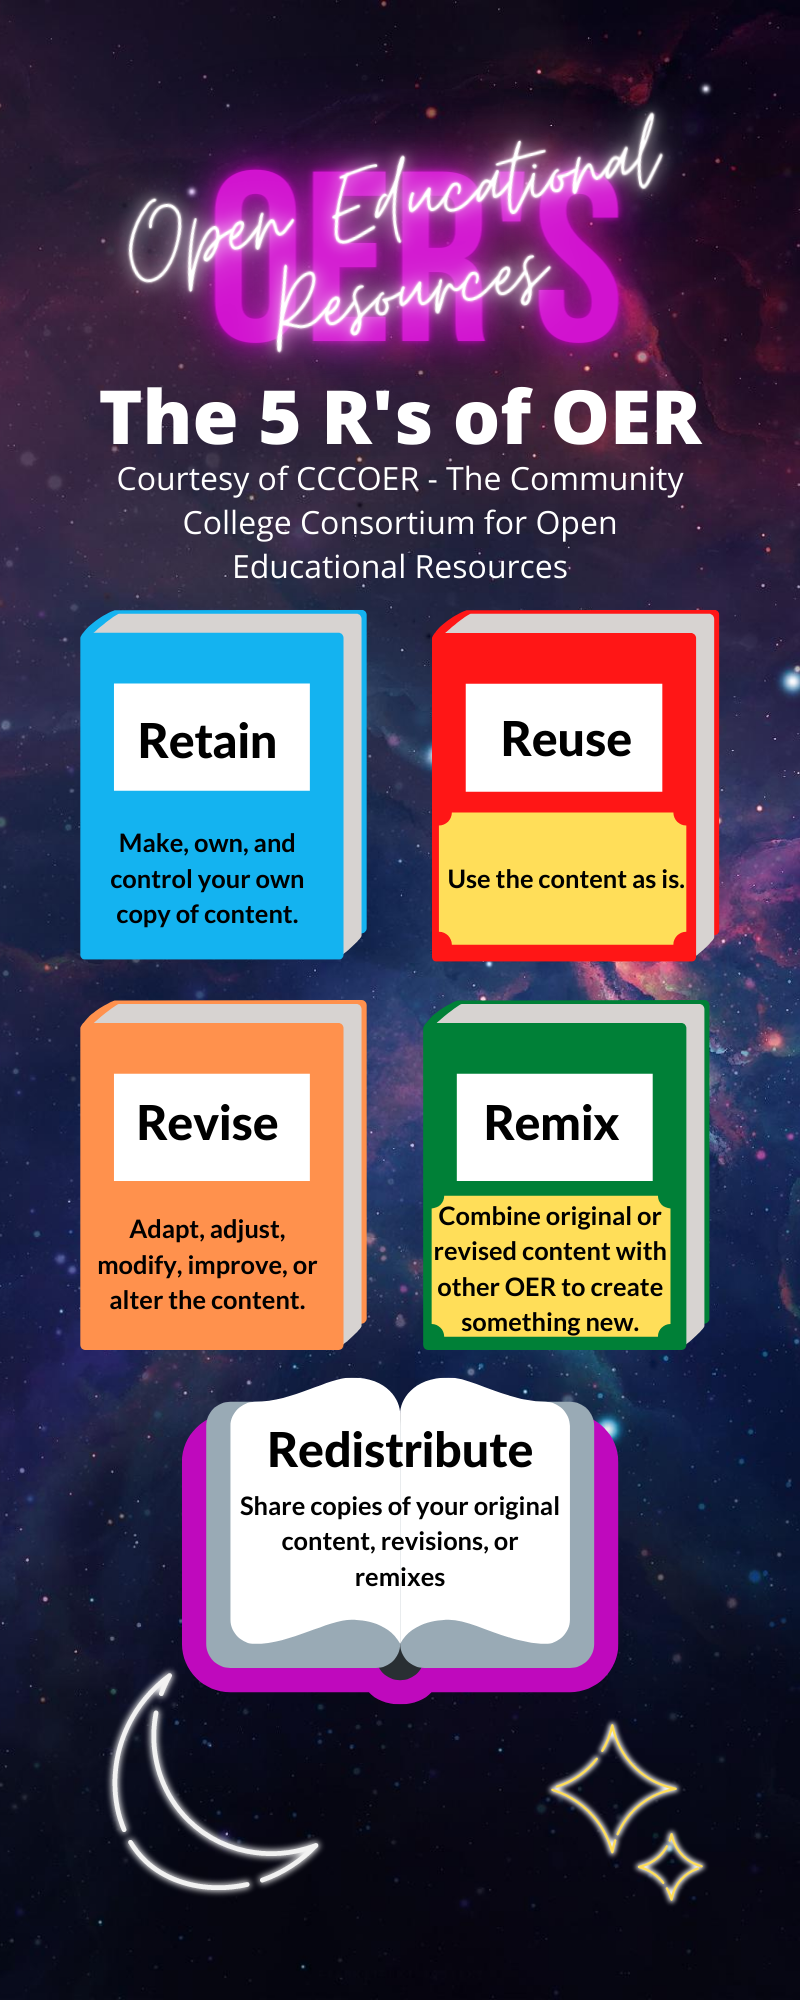 The 5 R's of OER(s): retain, reuse, revise, remix, redistribute